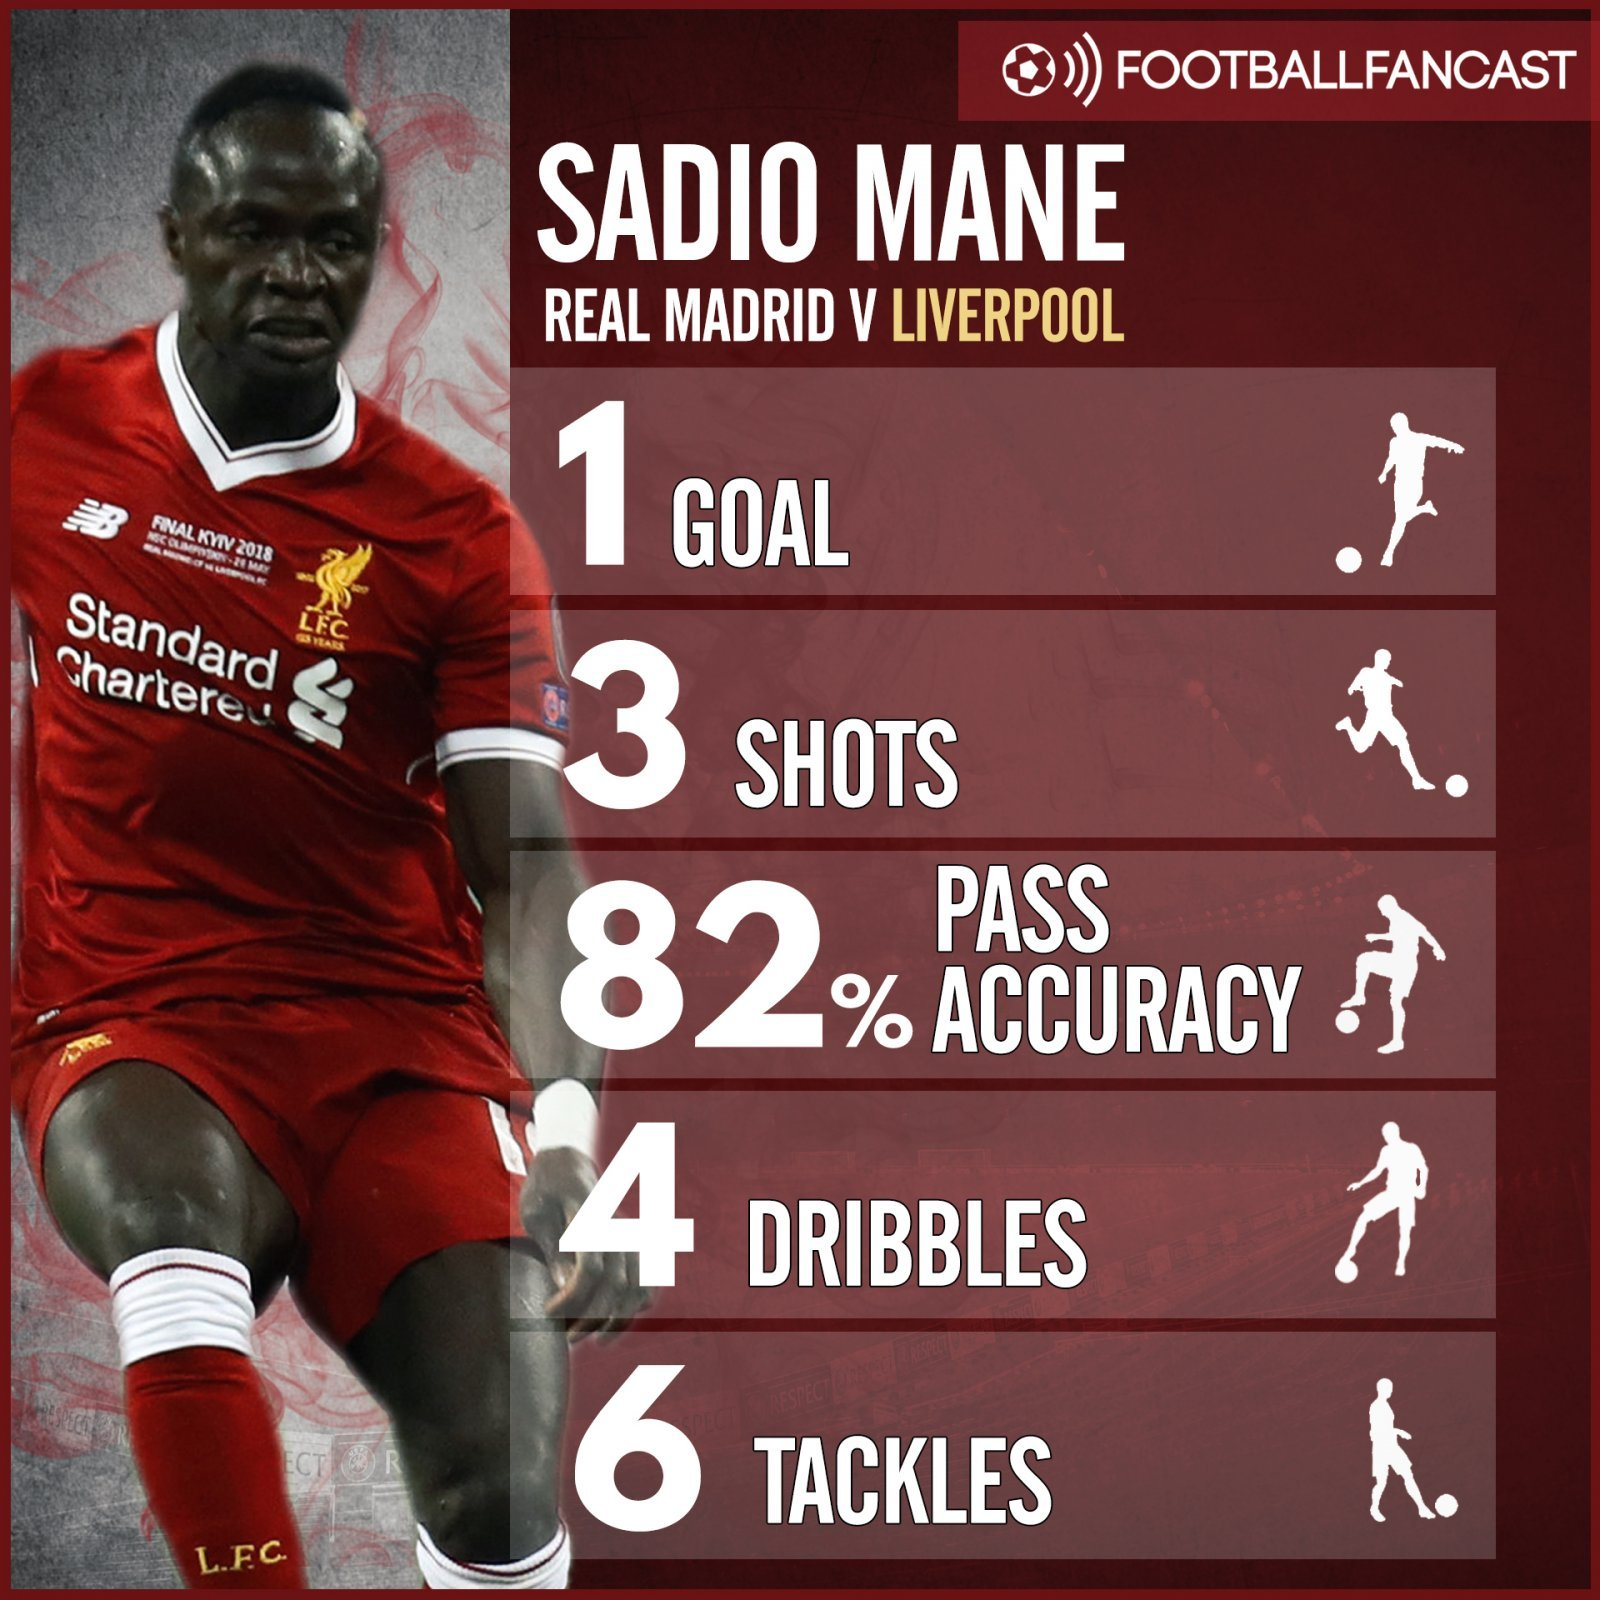 Sadio Mane's stats from the Champions League final